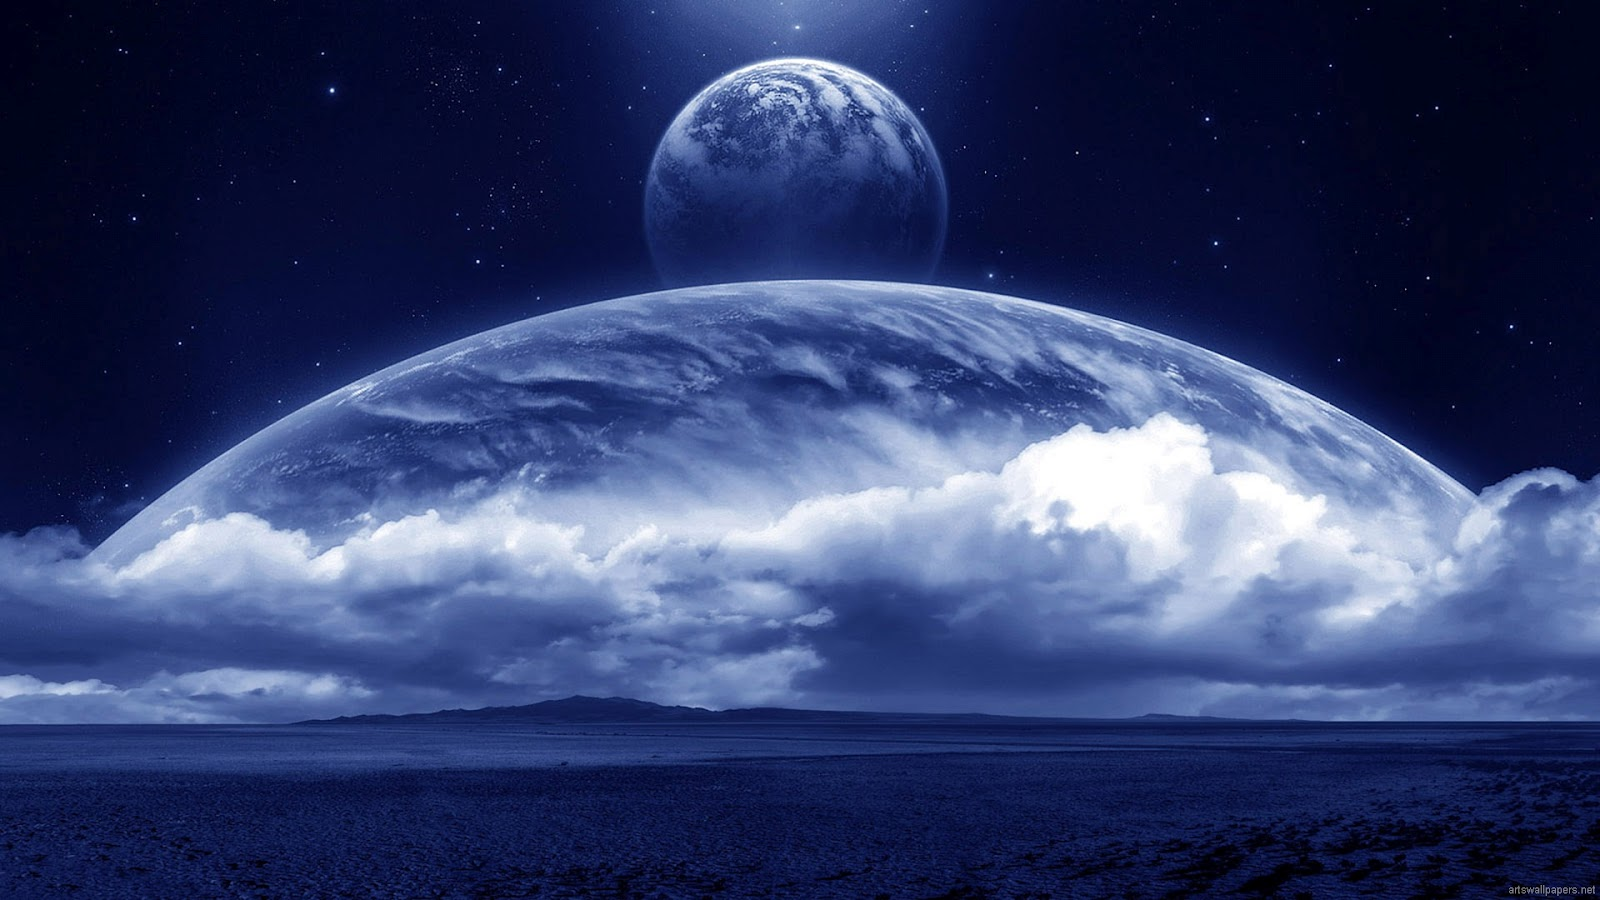 http://1.bp.blogspot.com/-_c-05ILDhcI/T2hMasnNenI/AAAAAAAAAsE/jxrCPrrlrdg/s1600/30-hd-wallpapers-blue-moon-clouds.jpg